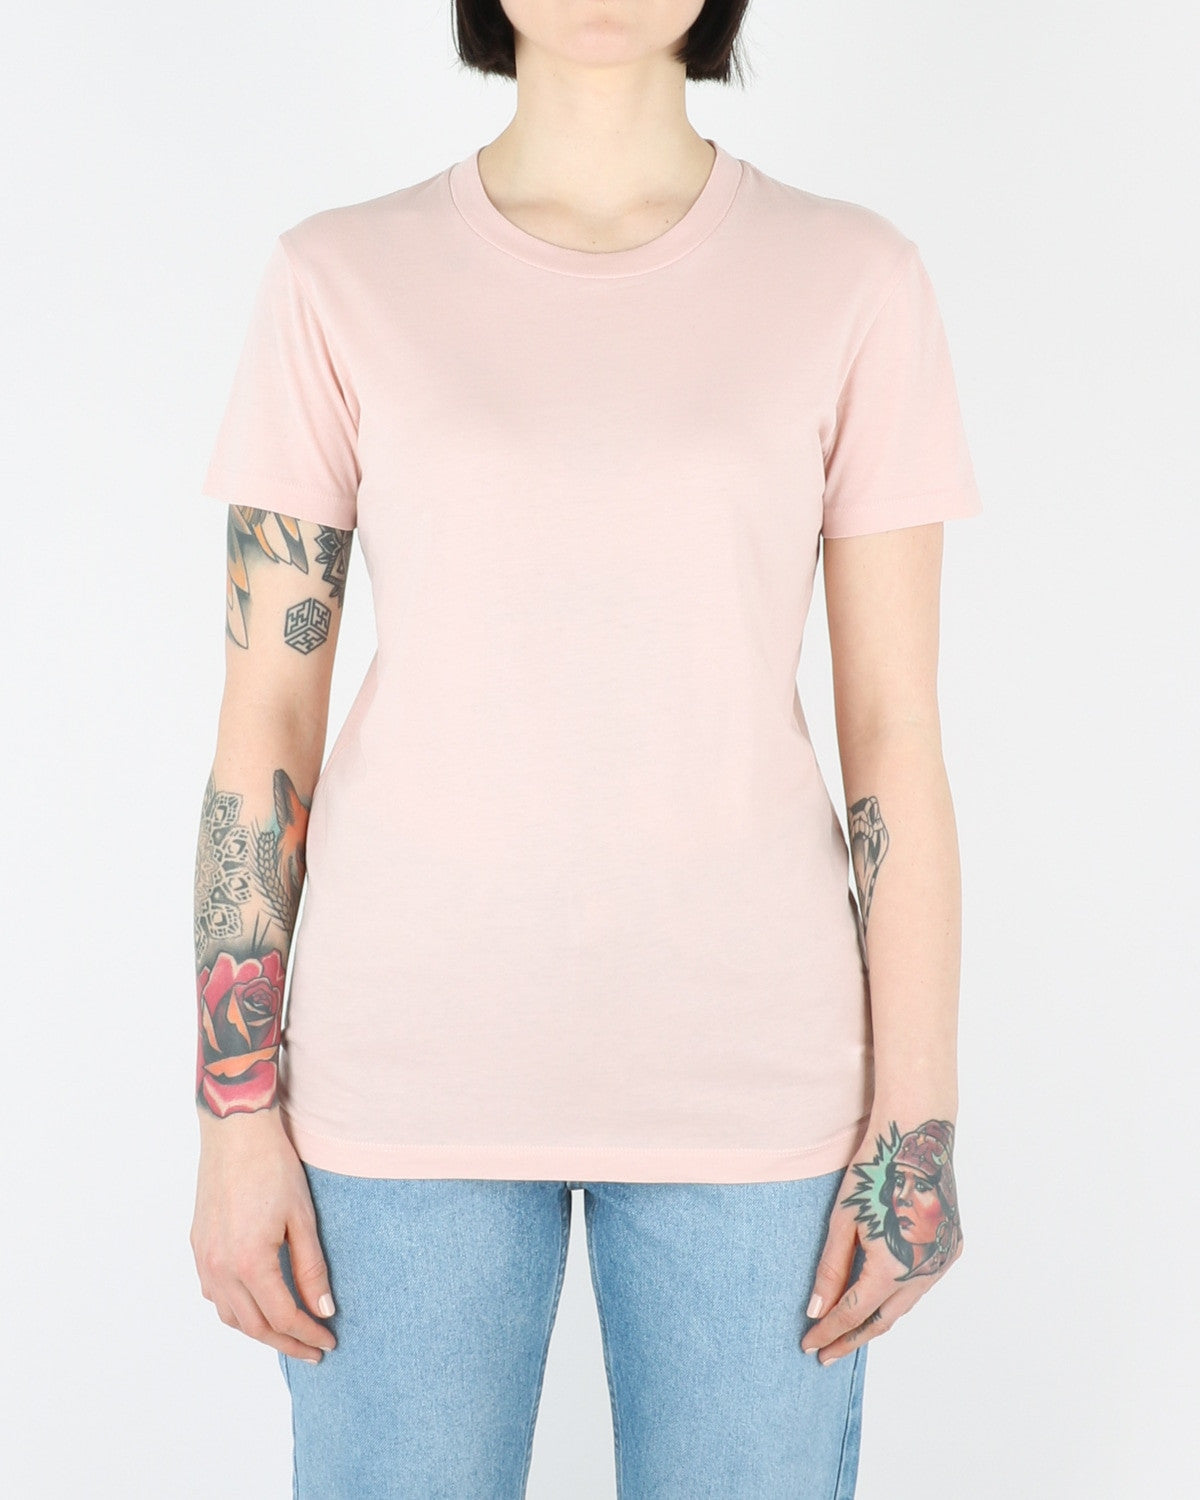 wood wood_eden t-shirt_light peach_view_2_2